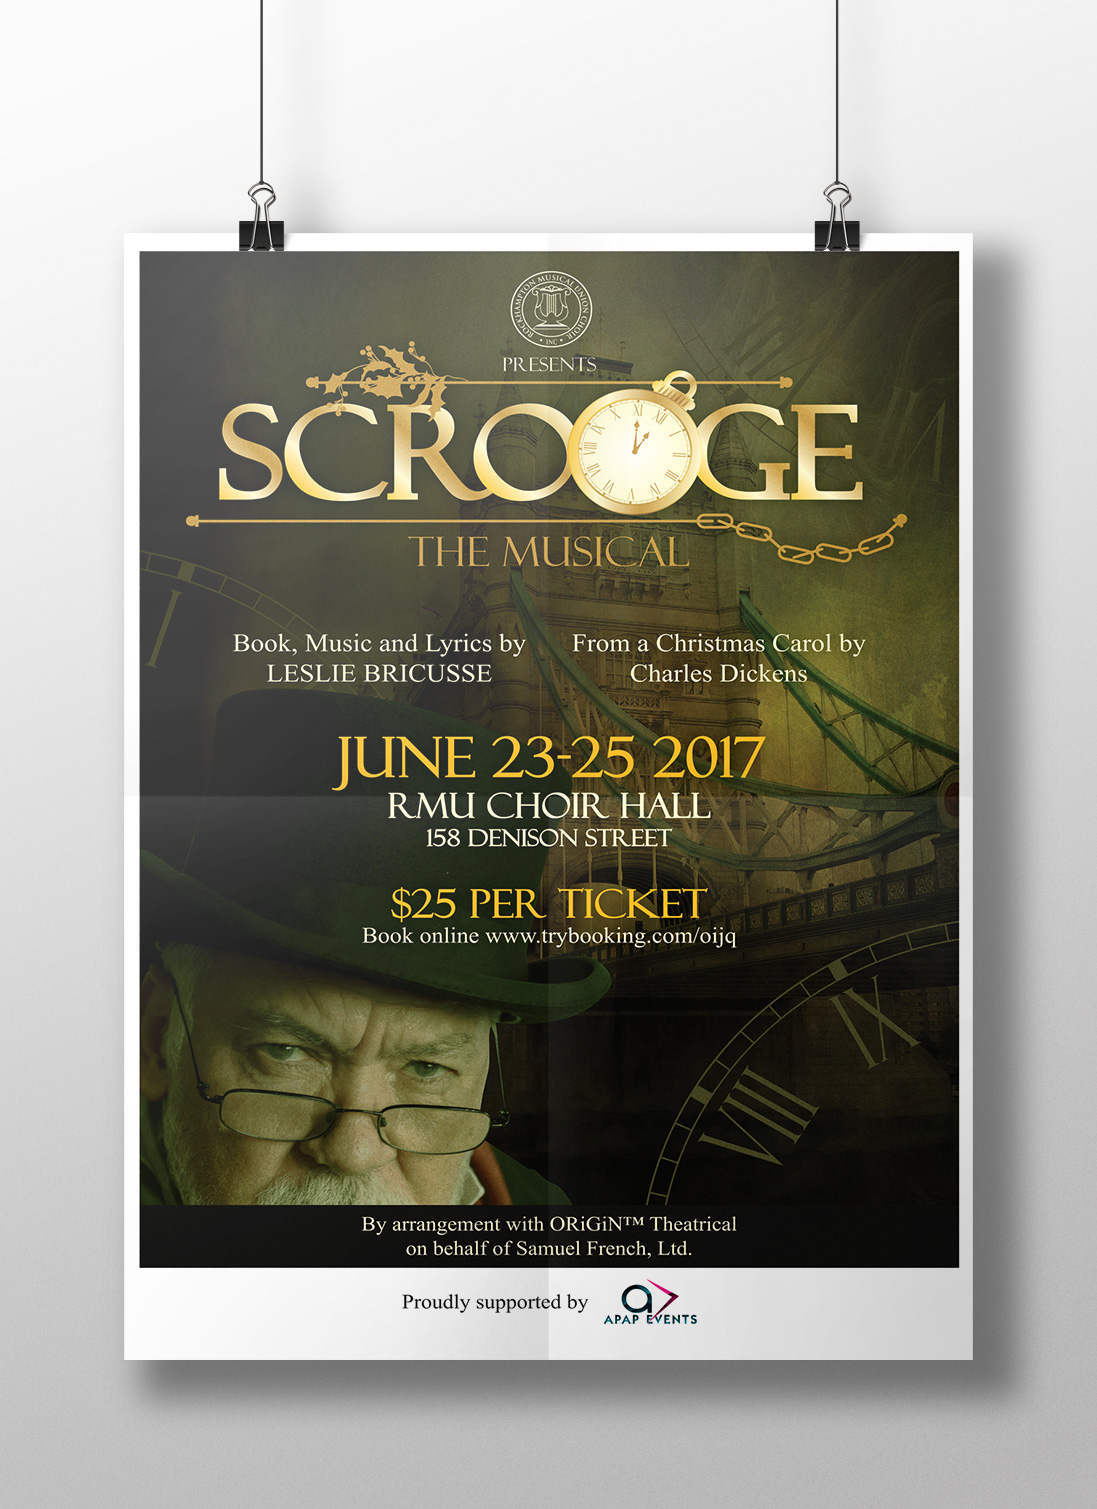 APAP Events Event Management and Graphic Design Rockhampton Scrooge The Musical Poster and Logo design